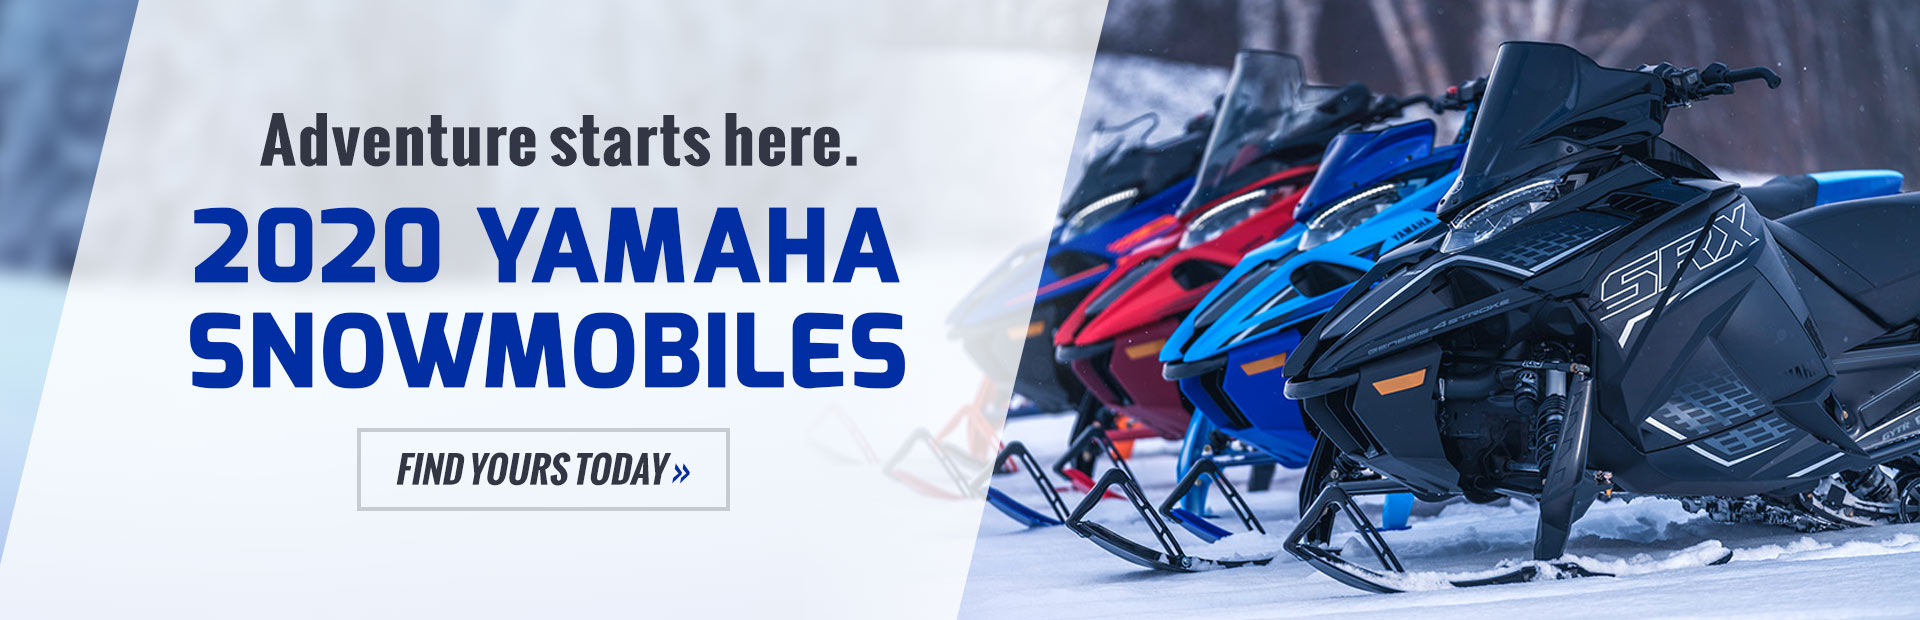 2020 Yamaha Snowmobiles: Click here to view the models.